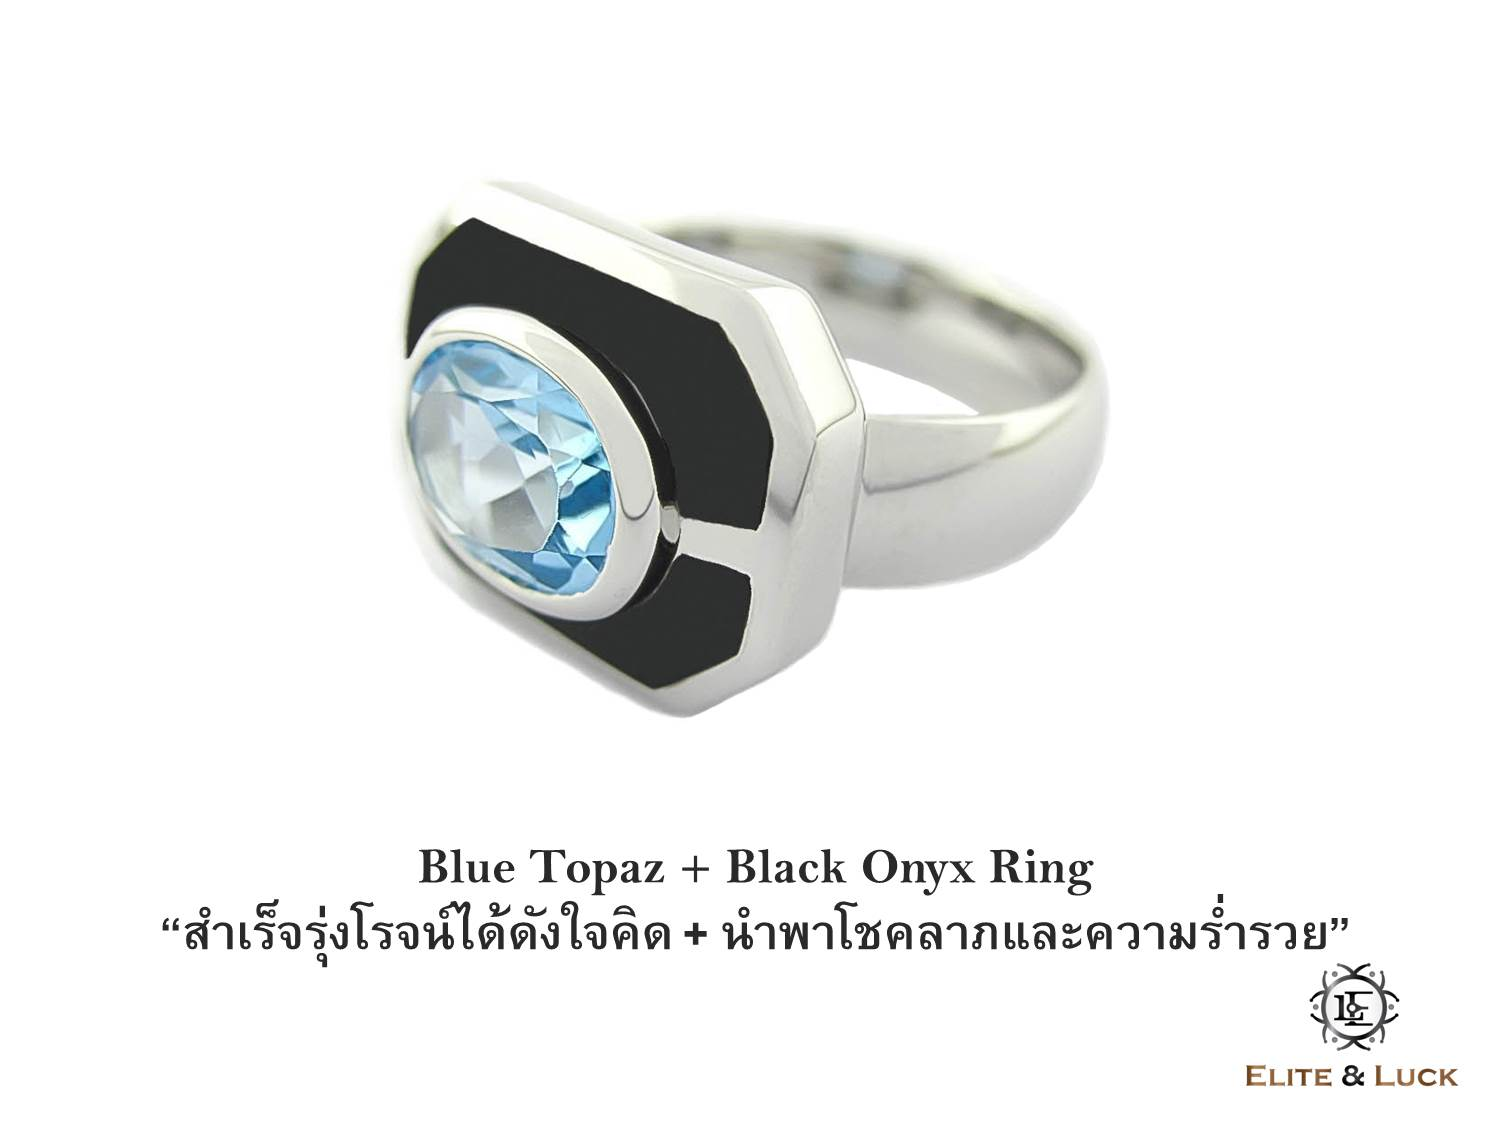 แหวน Blue Topaz + Black Onyx Sterling Silver สี Rhodium รุ่น Charming